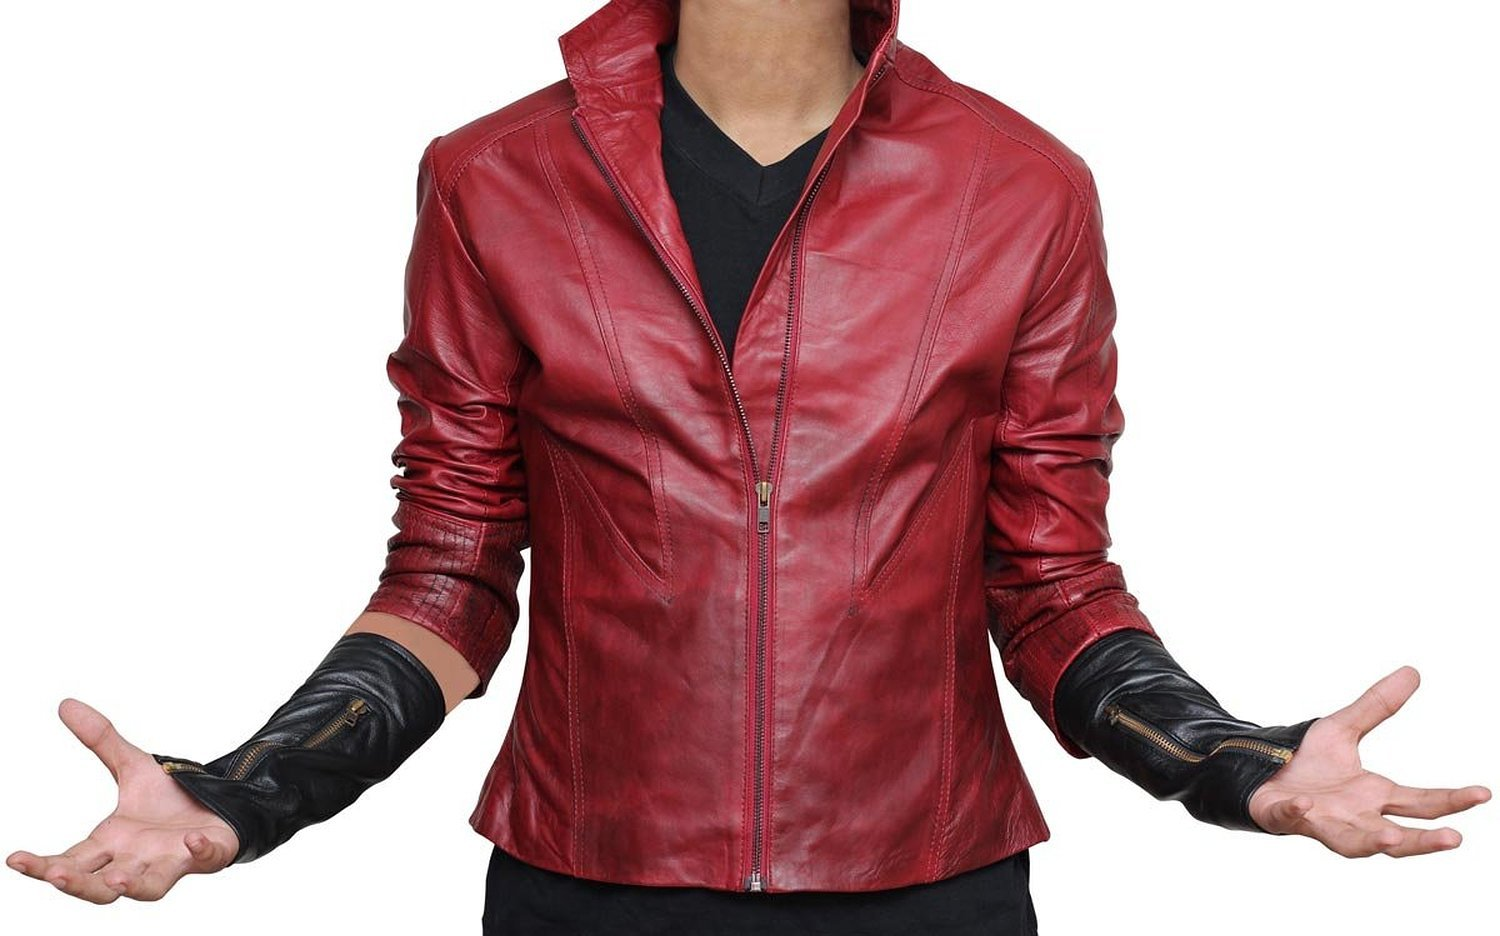 Scarlet Witch Age of Ultron Jacket - Elizabeth Olsen Red Avengers Jacket For Her (XXL, Red) by BlingSoul